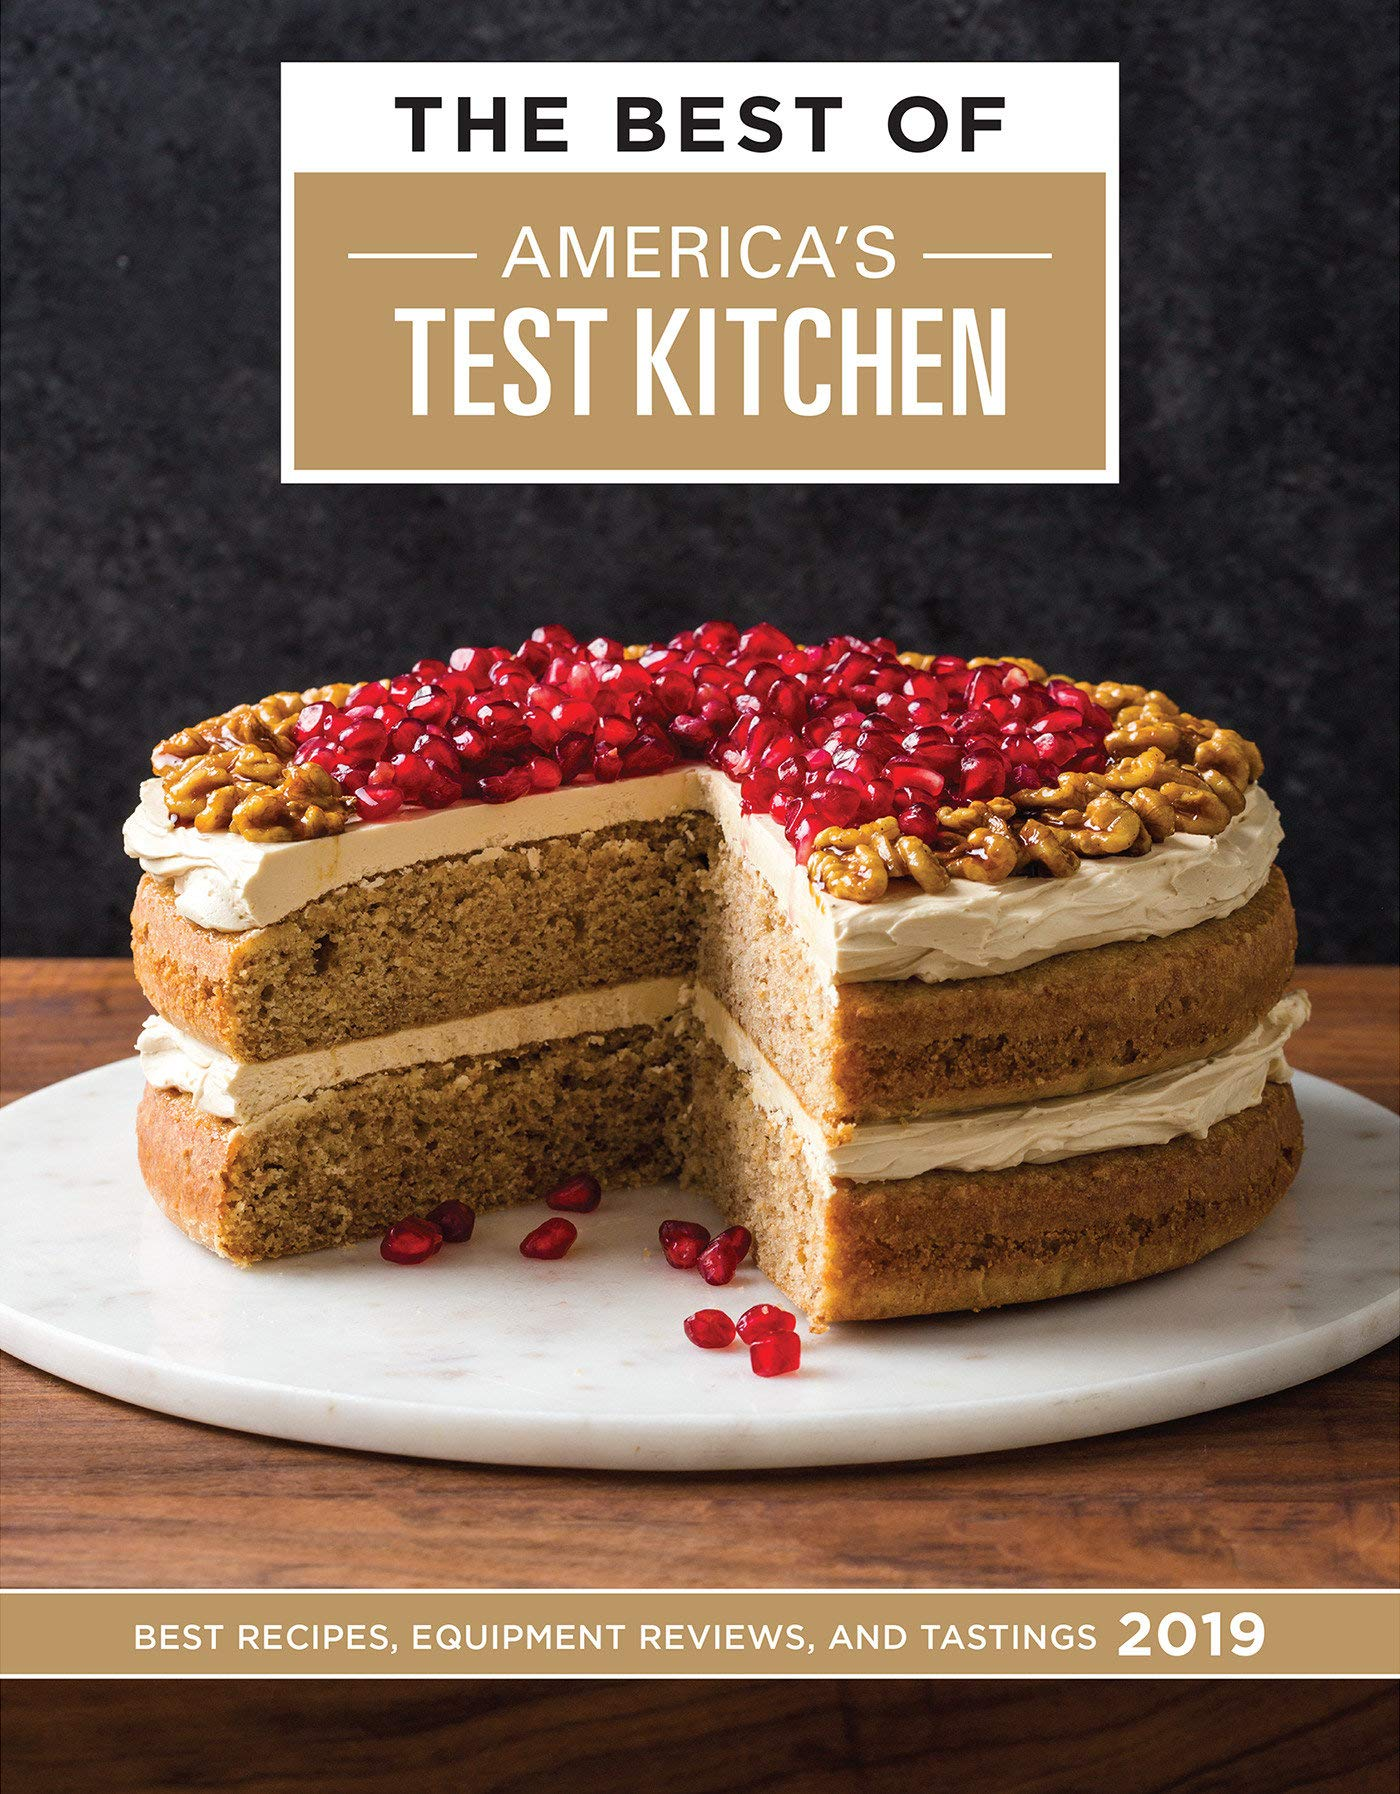 The Best of America's Test Kitchen 2019: Best Recipes, Equipment Reviews, and Tastings by America's Test Kitchen